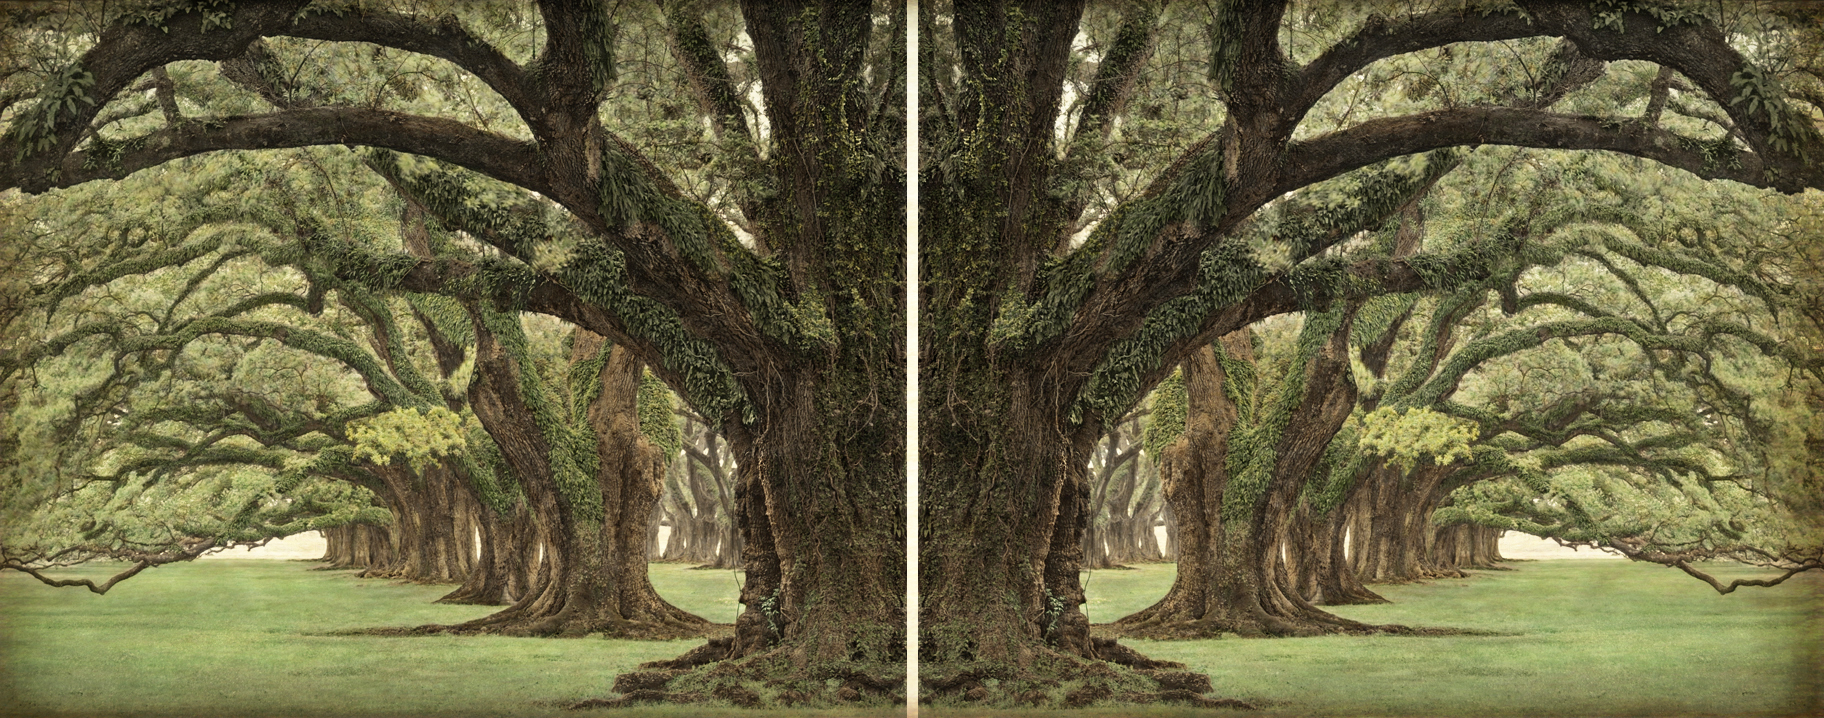 Oak alley diptych, hand-painted canvas print, edition of 10